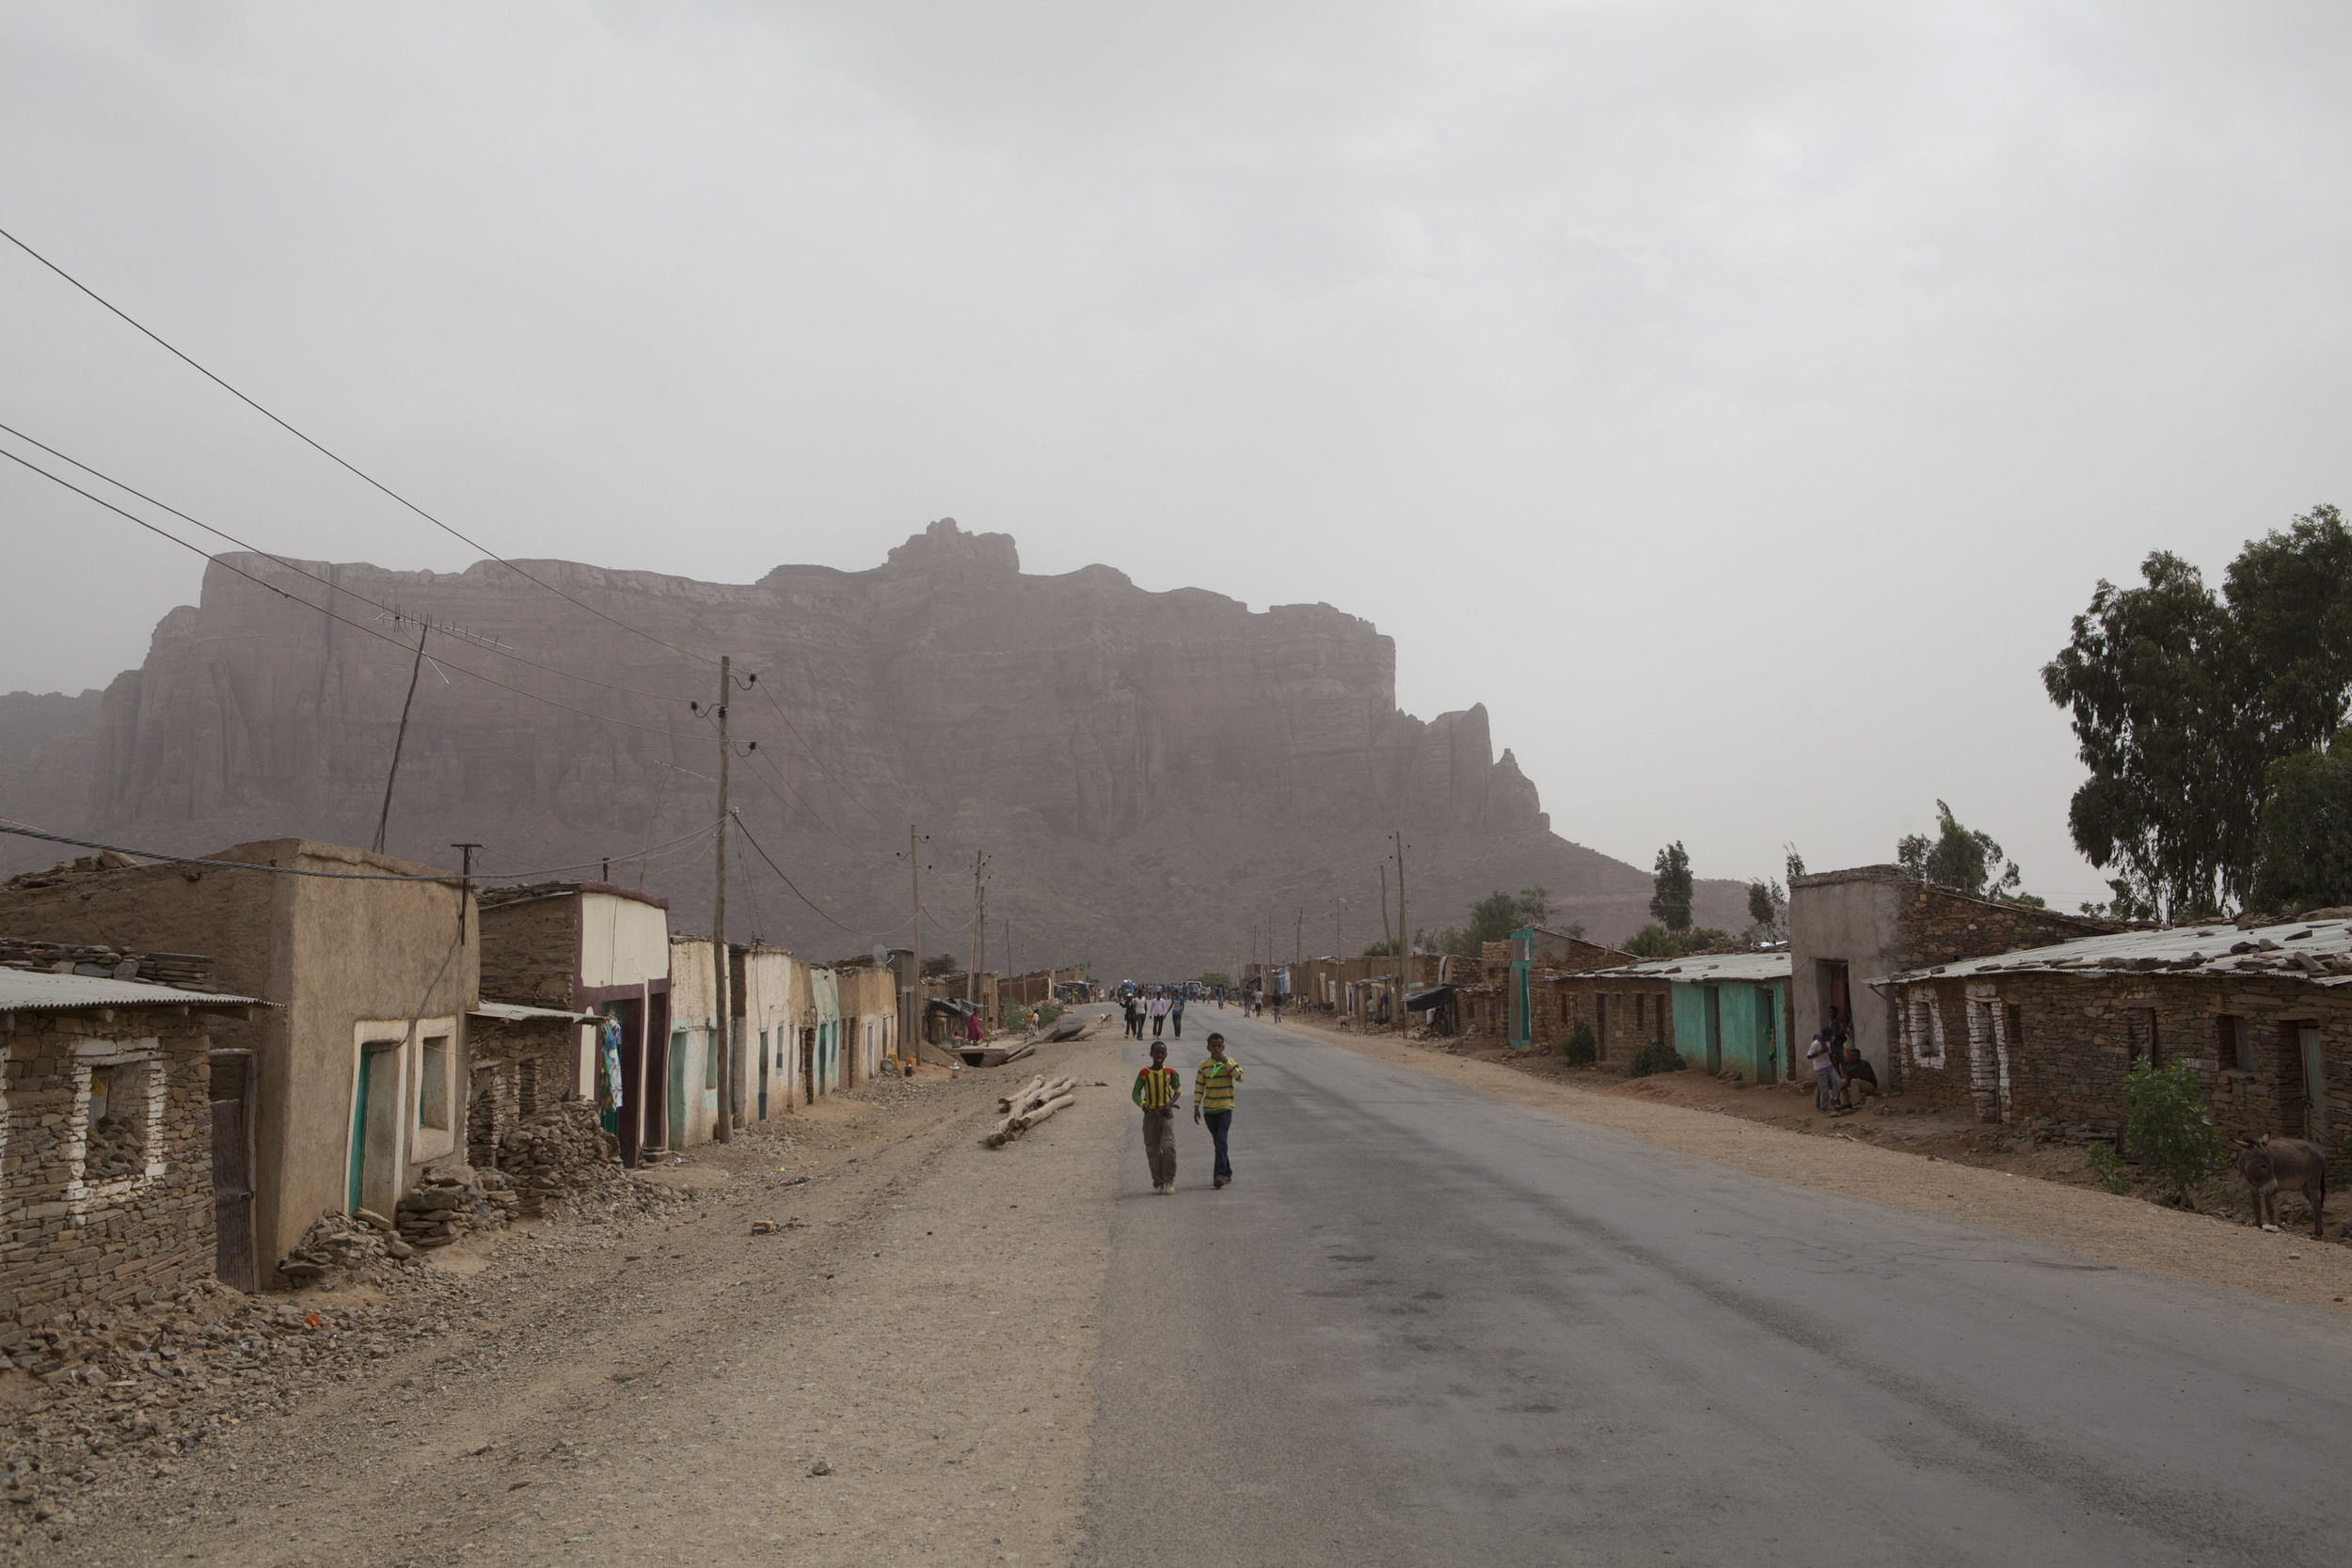 The small town of Megab, which sits it the shadow of the mountain range.